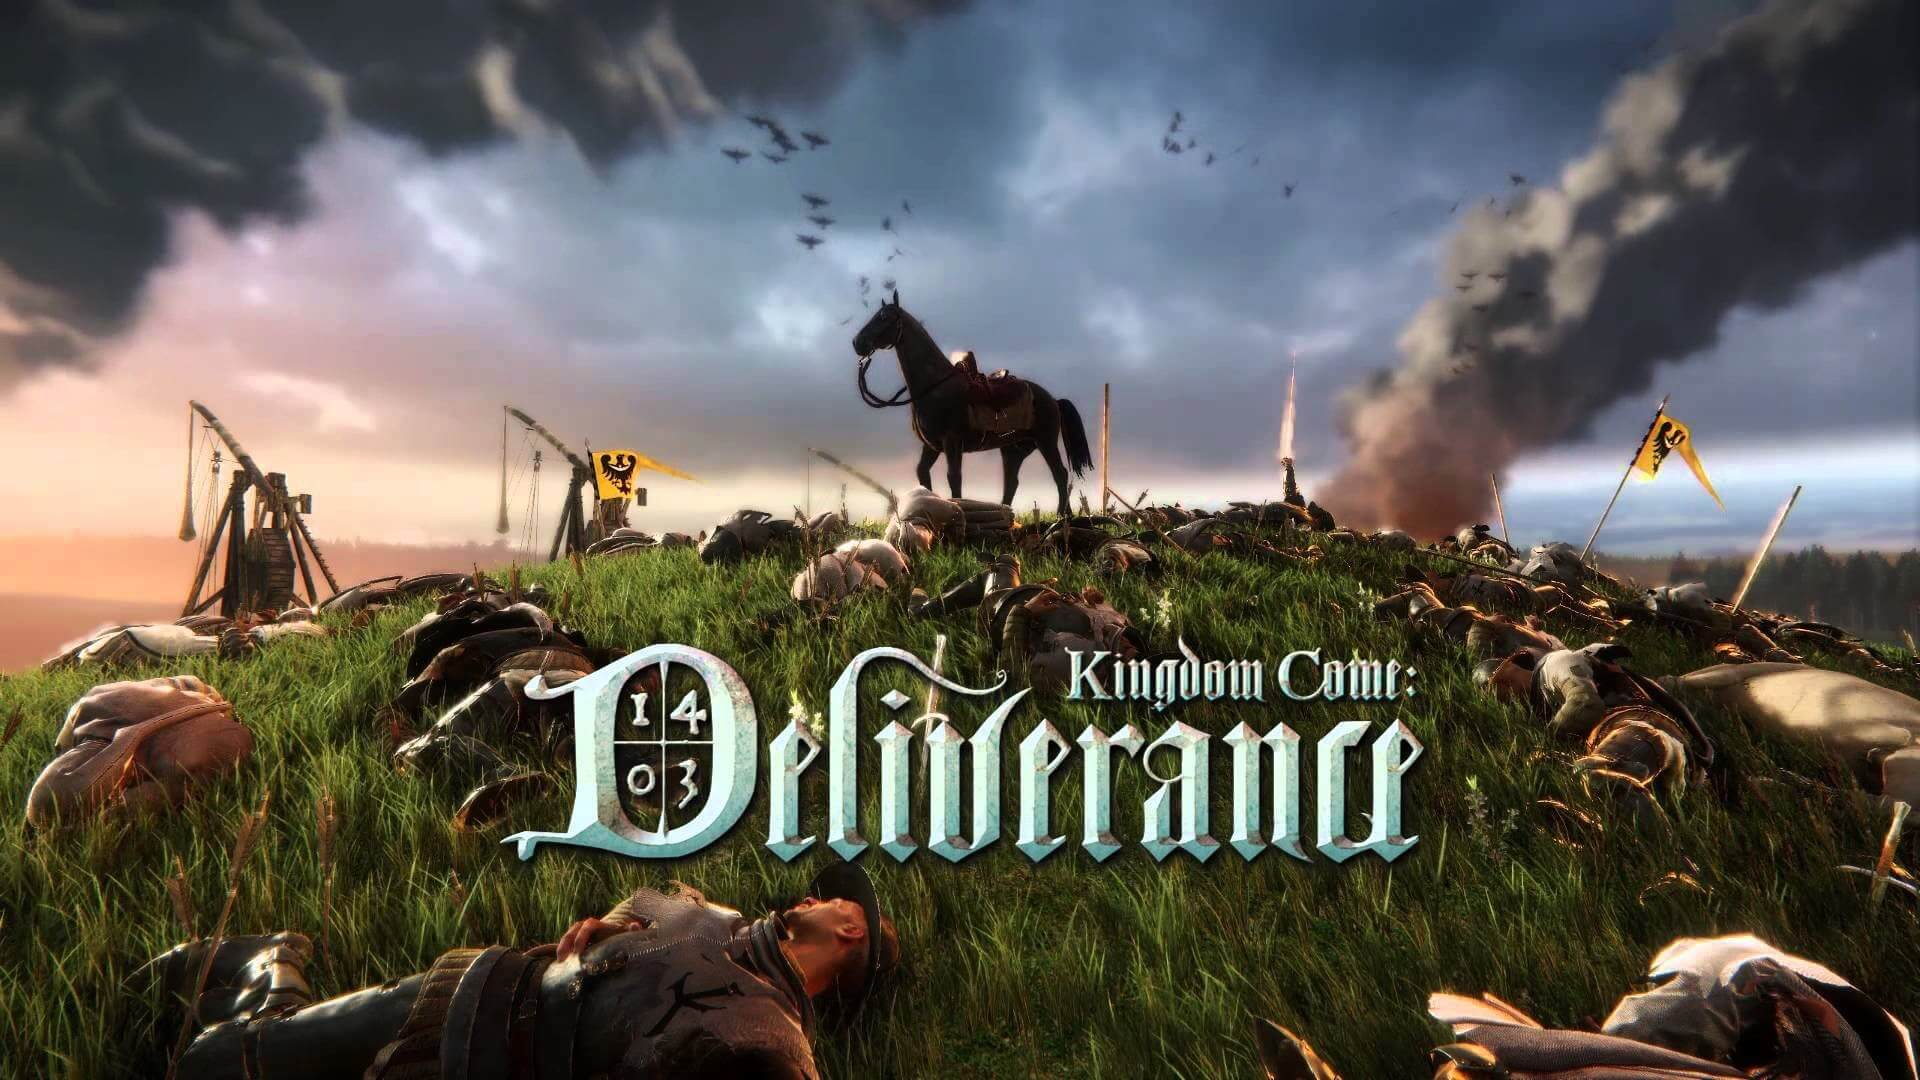 Kingdom Come Deliverance art